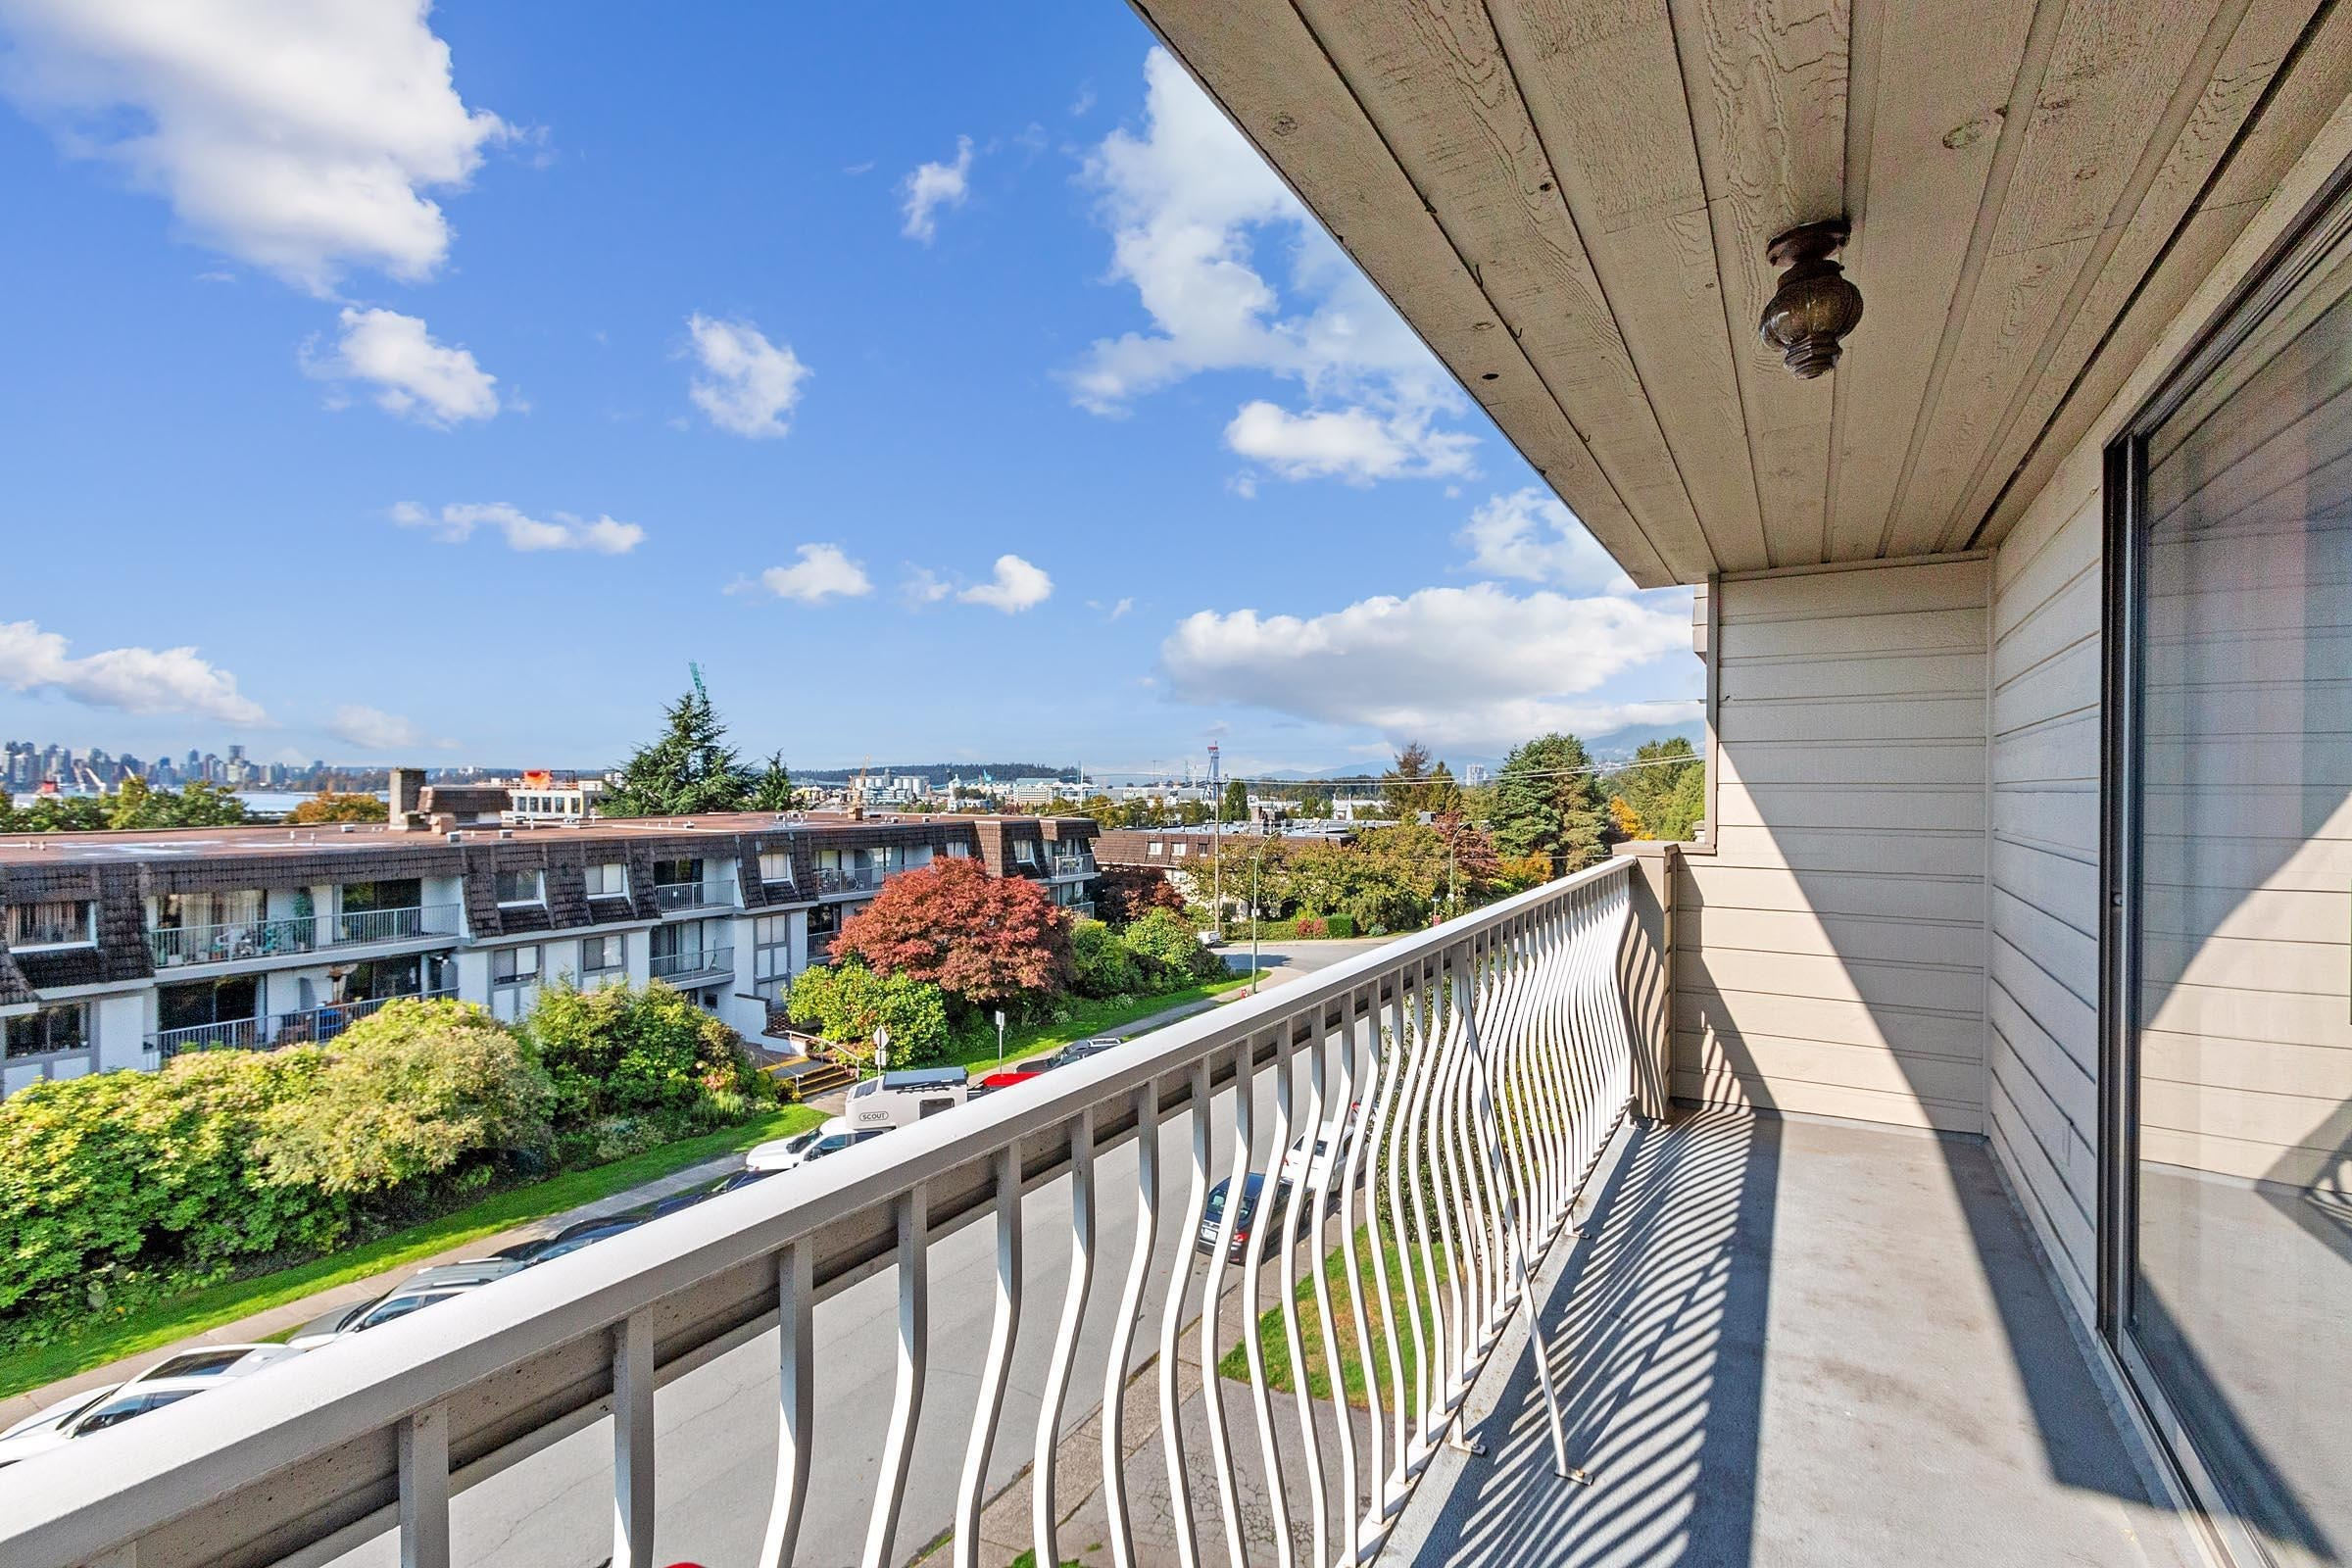 301 264 W 2ND STREET - Lower Lonsdale Apartment/Condo for sale, 2 Bedrooms (R2625527) - #17